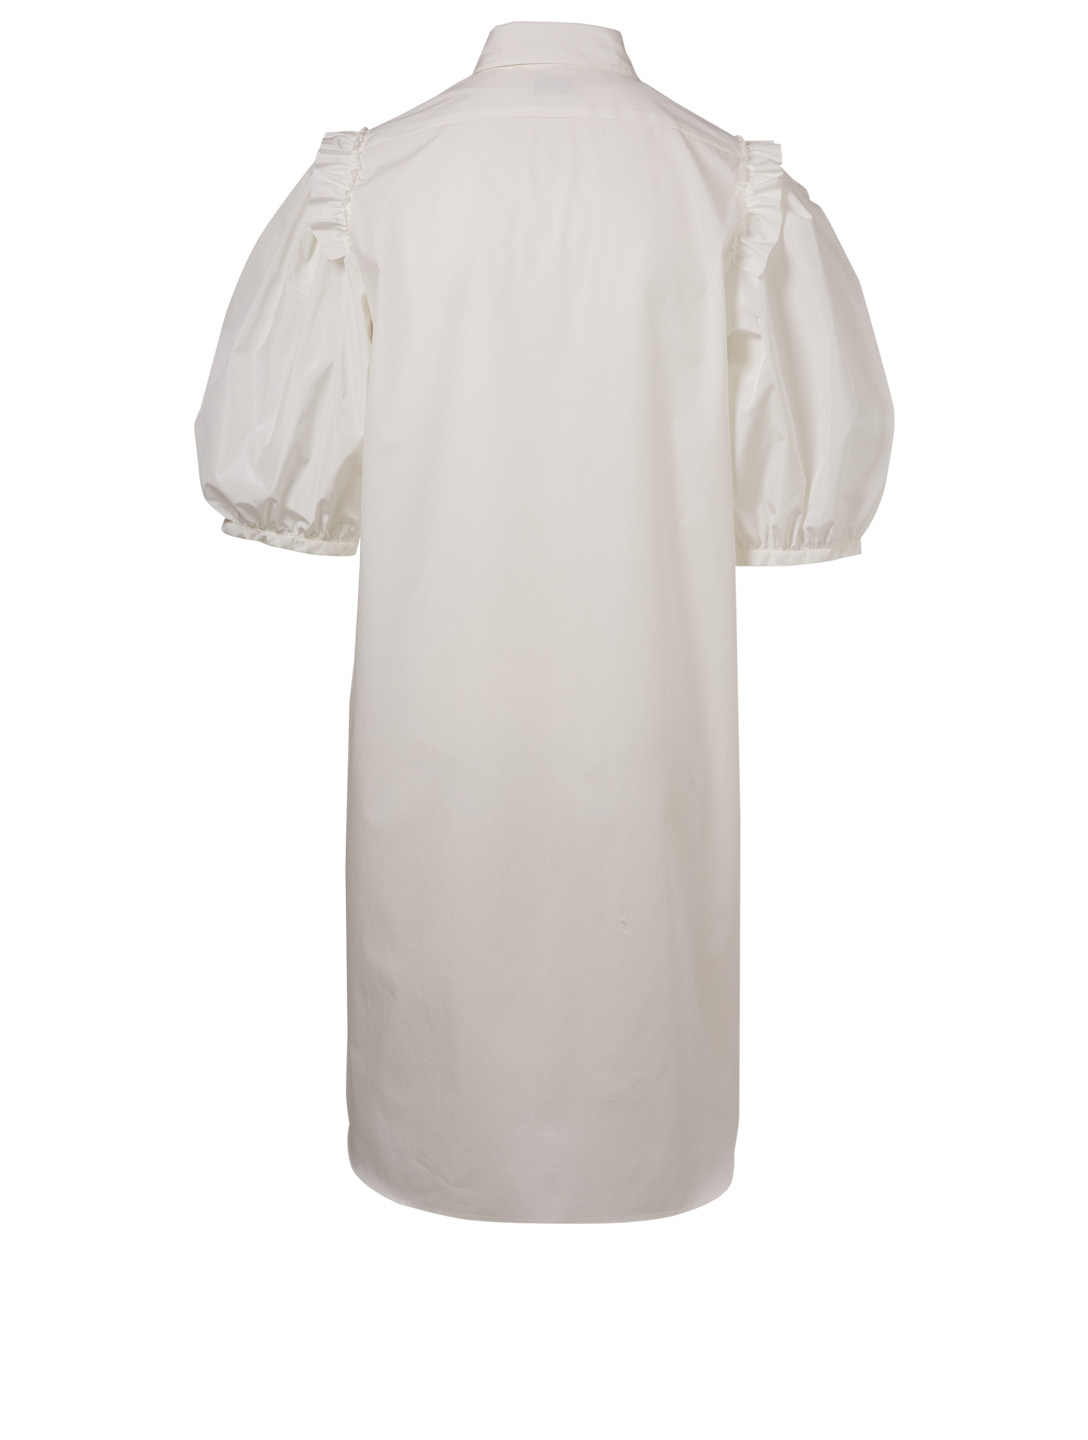 MONCLER GENIUS 4 Moncler Simone Rocha Ruffled Shirt Dress Women's White